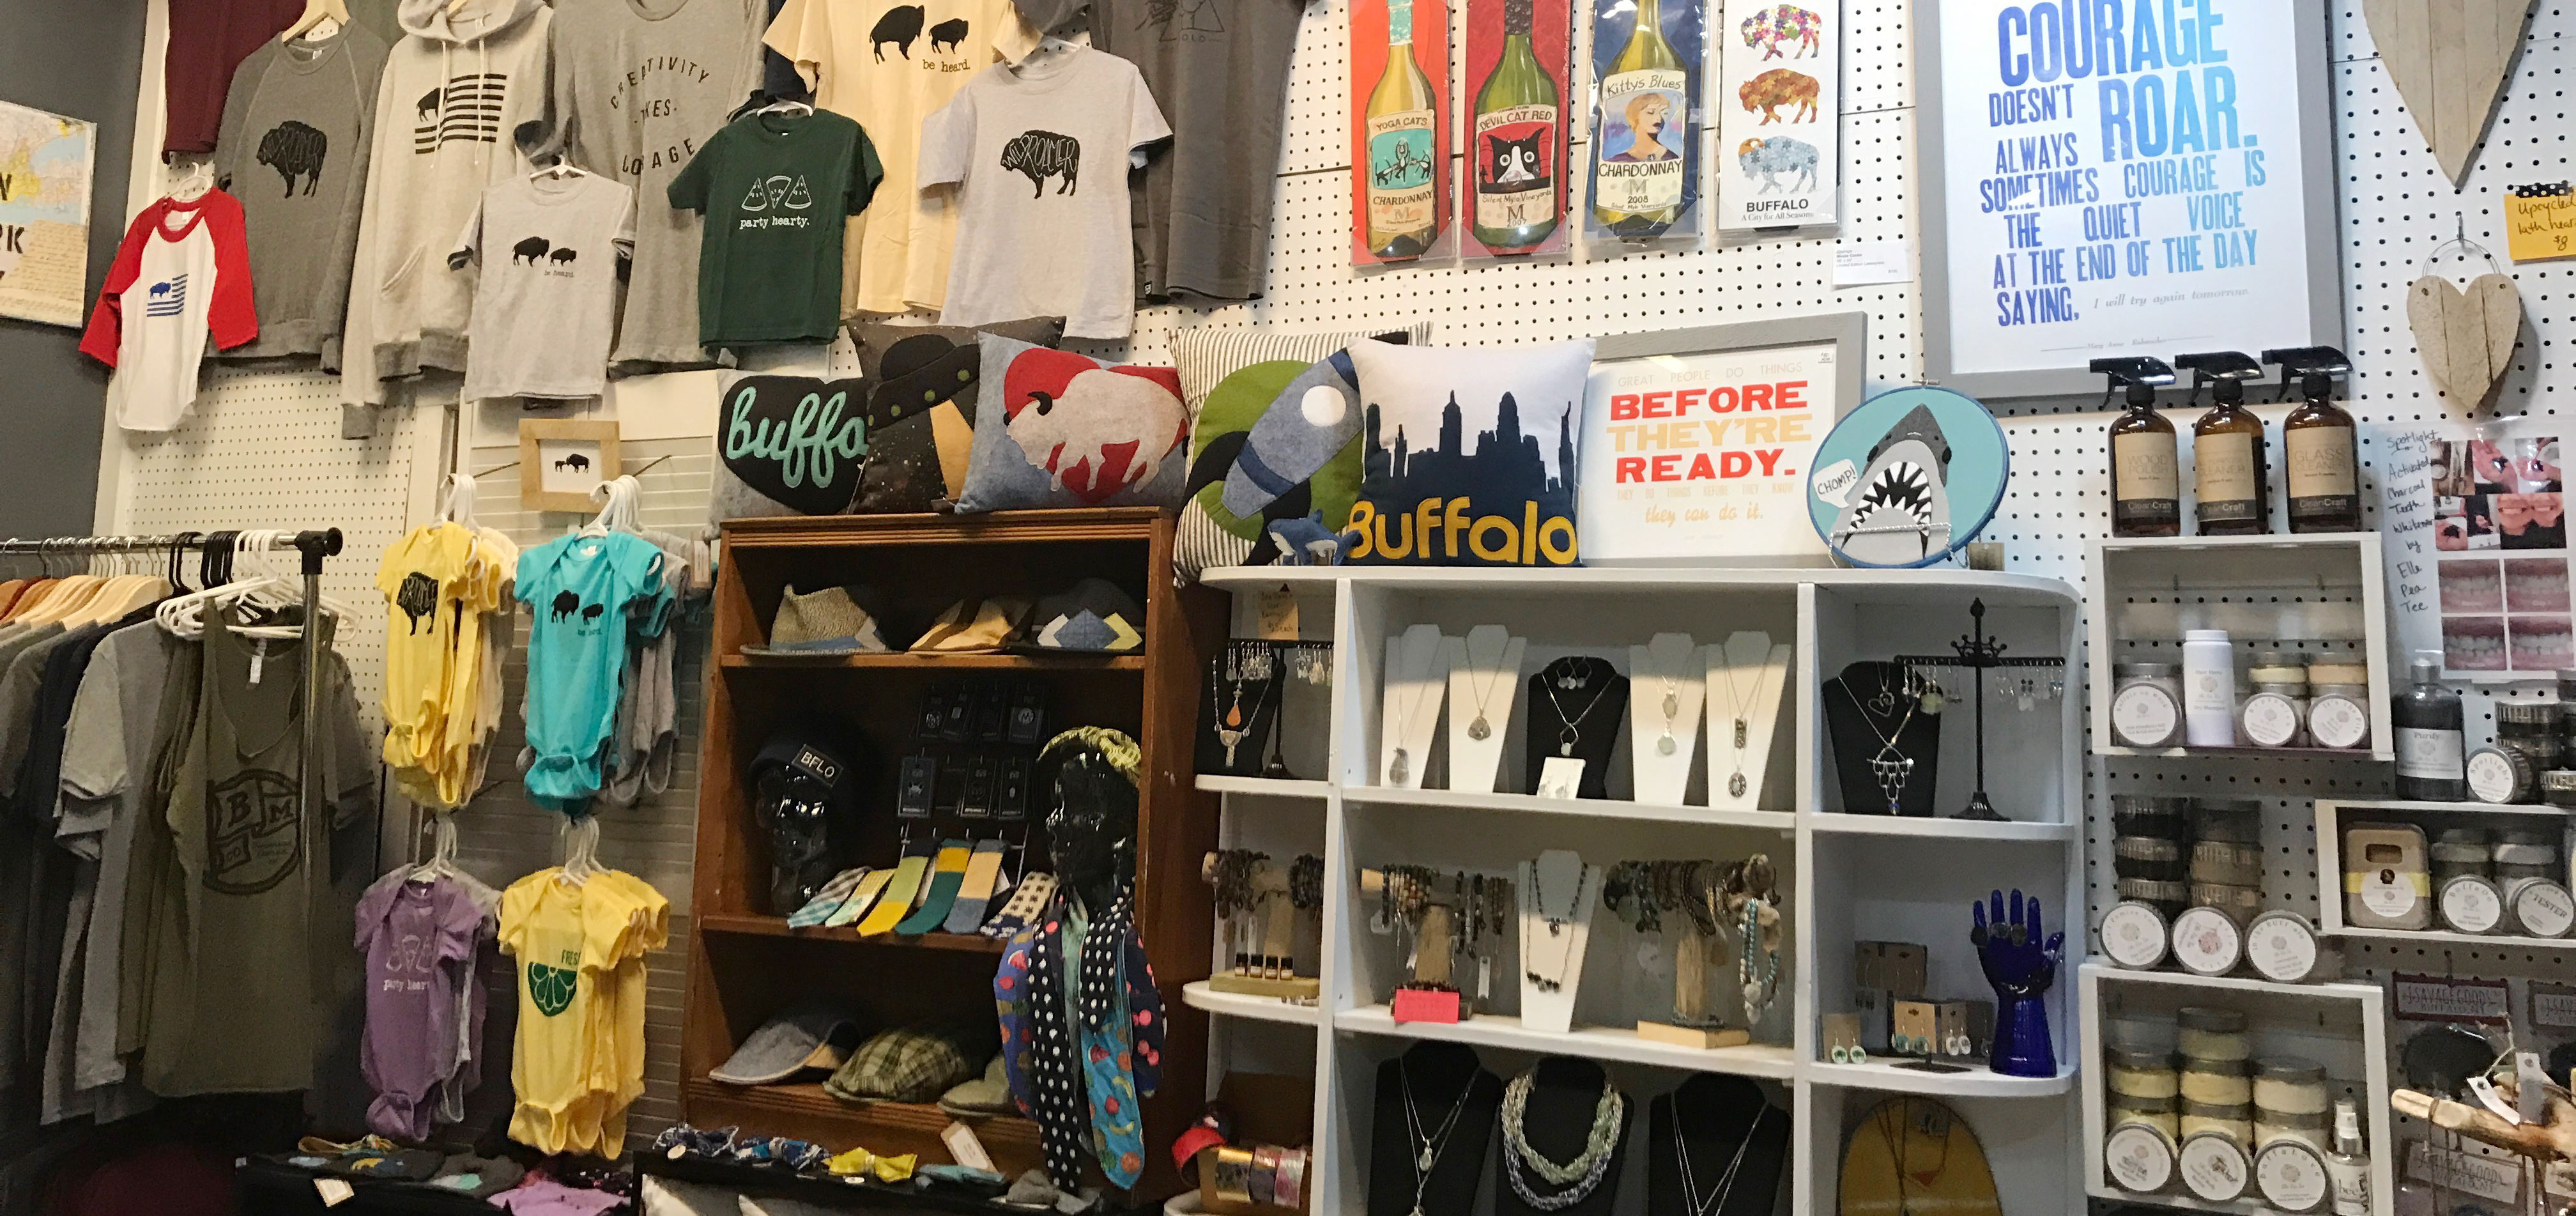 buffalo gallery and gift shop